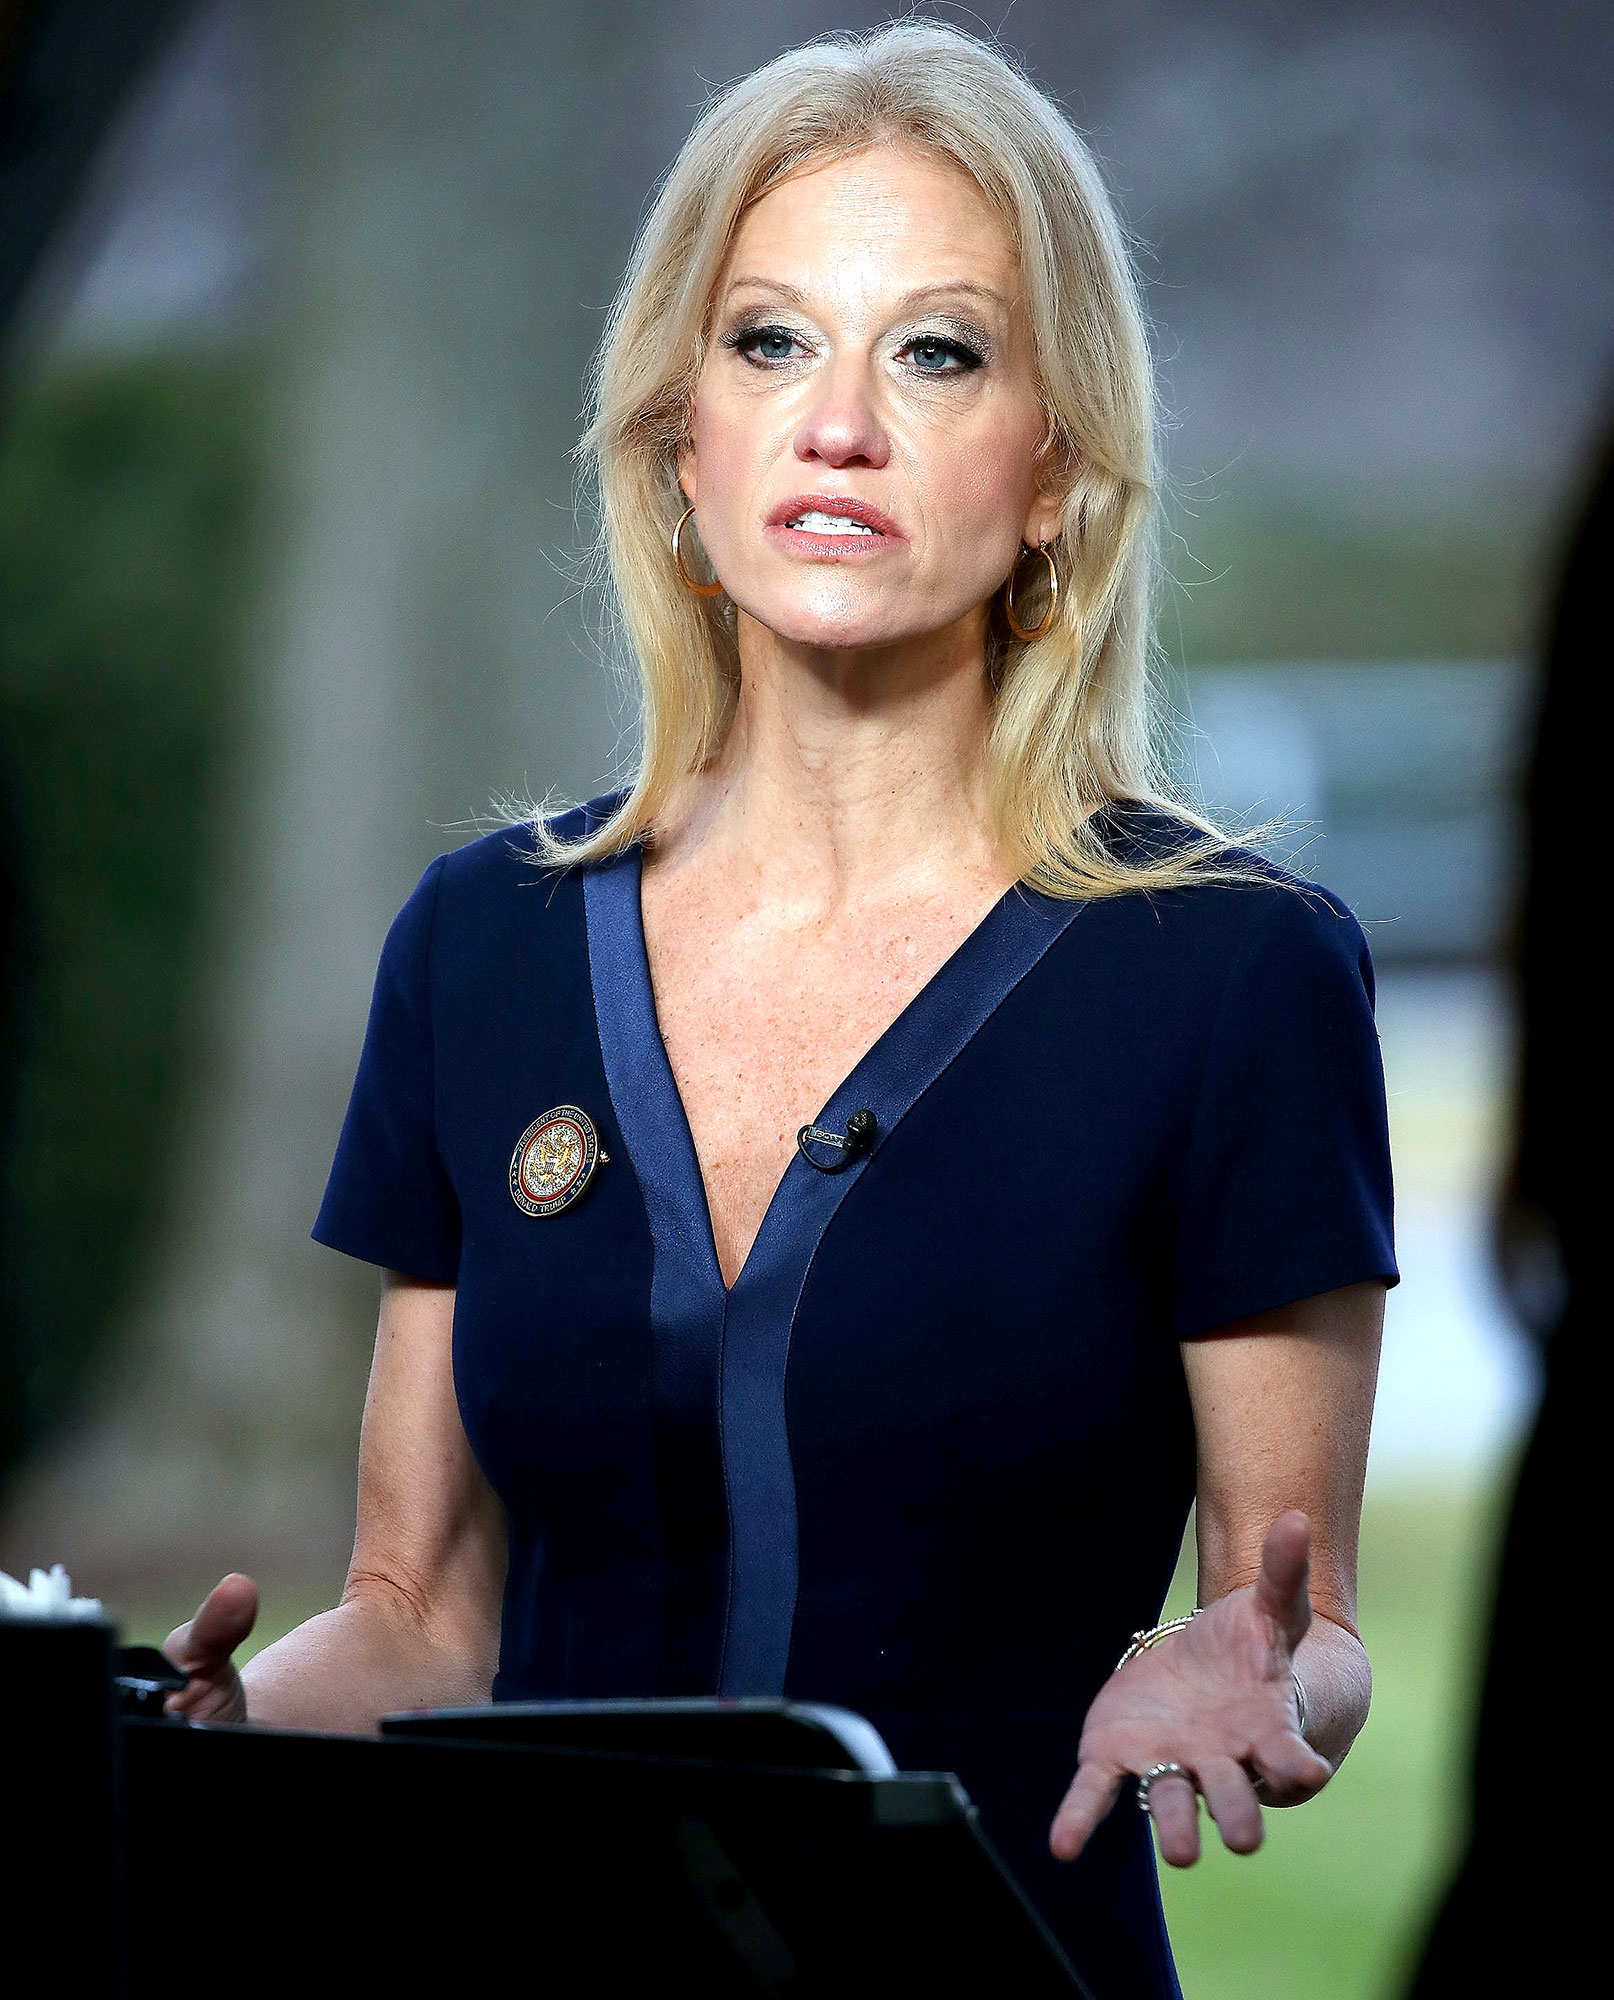 Counselor to President, Kellyanne Conway, appears on the Sunday morning show This Week with George Stephanopoulos, from the north lawn at the White House, January 22, 2017 in Washington, DC.